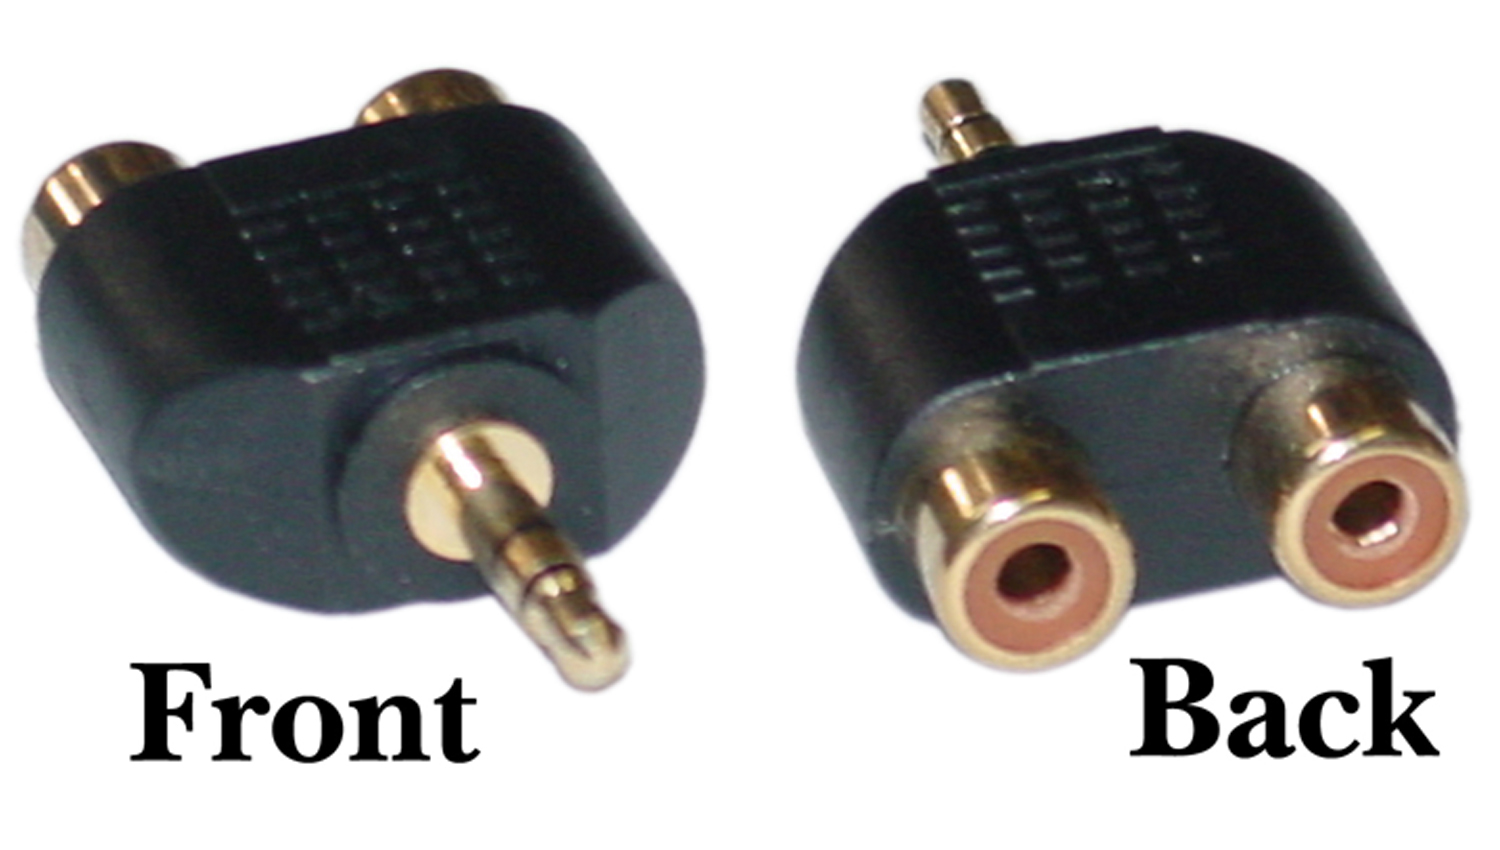 Offex Wholesale RCA to Stereo adapter, 2 x RCA Female / 1 x 3.5mm Stereo Male